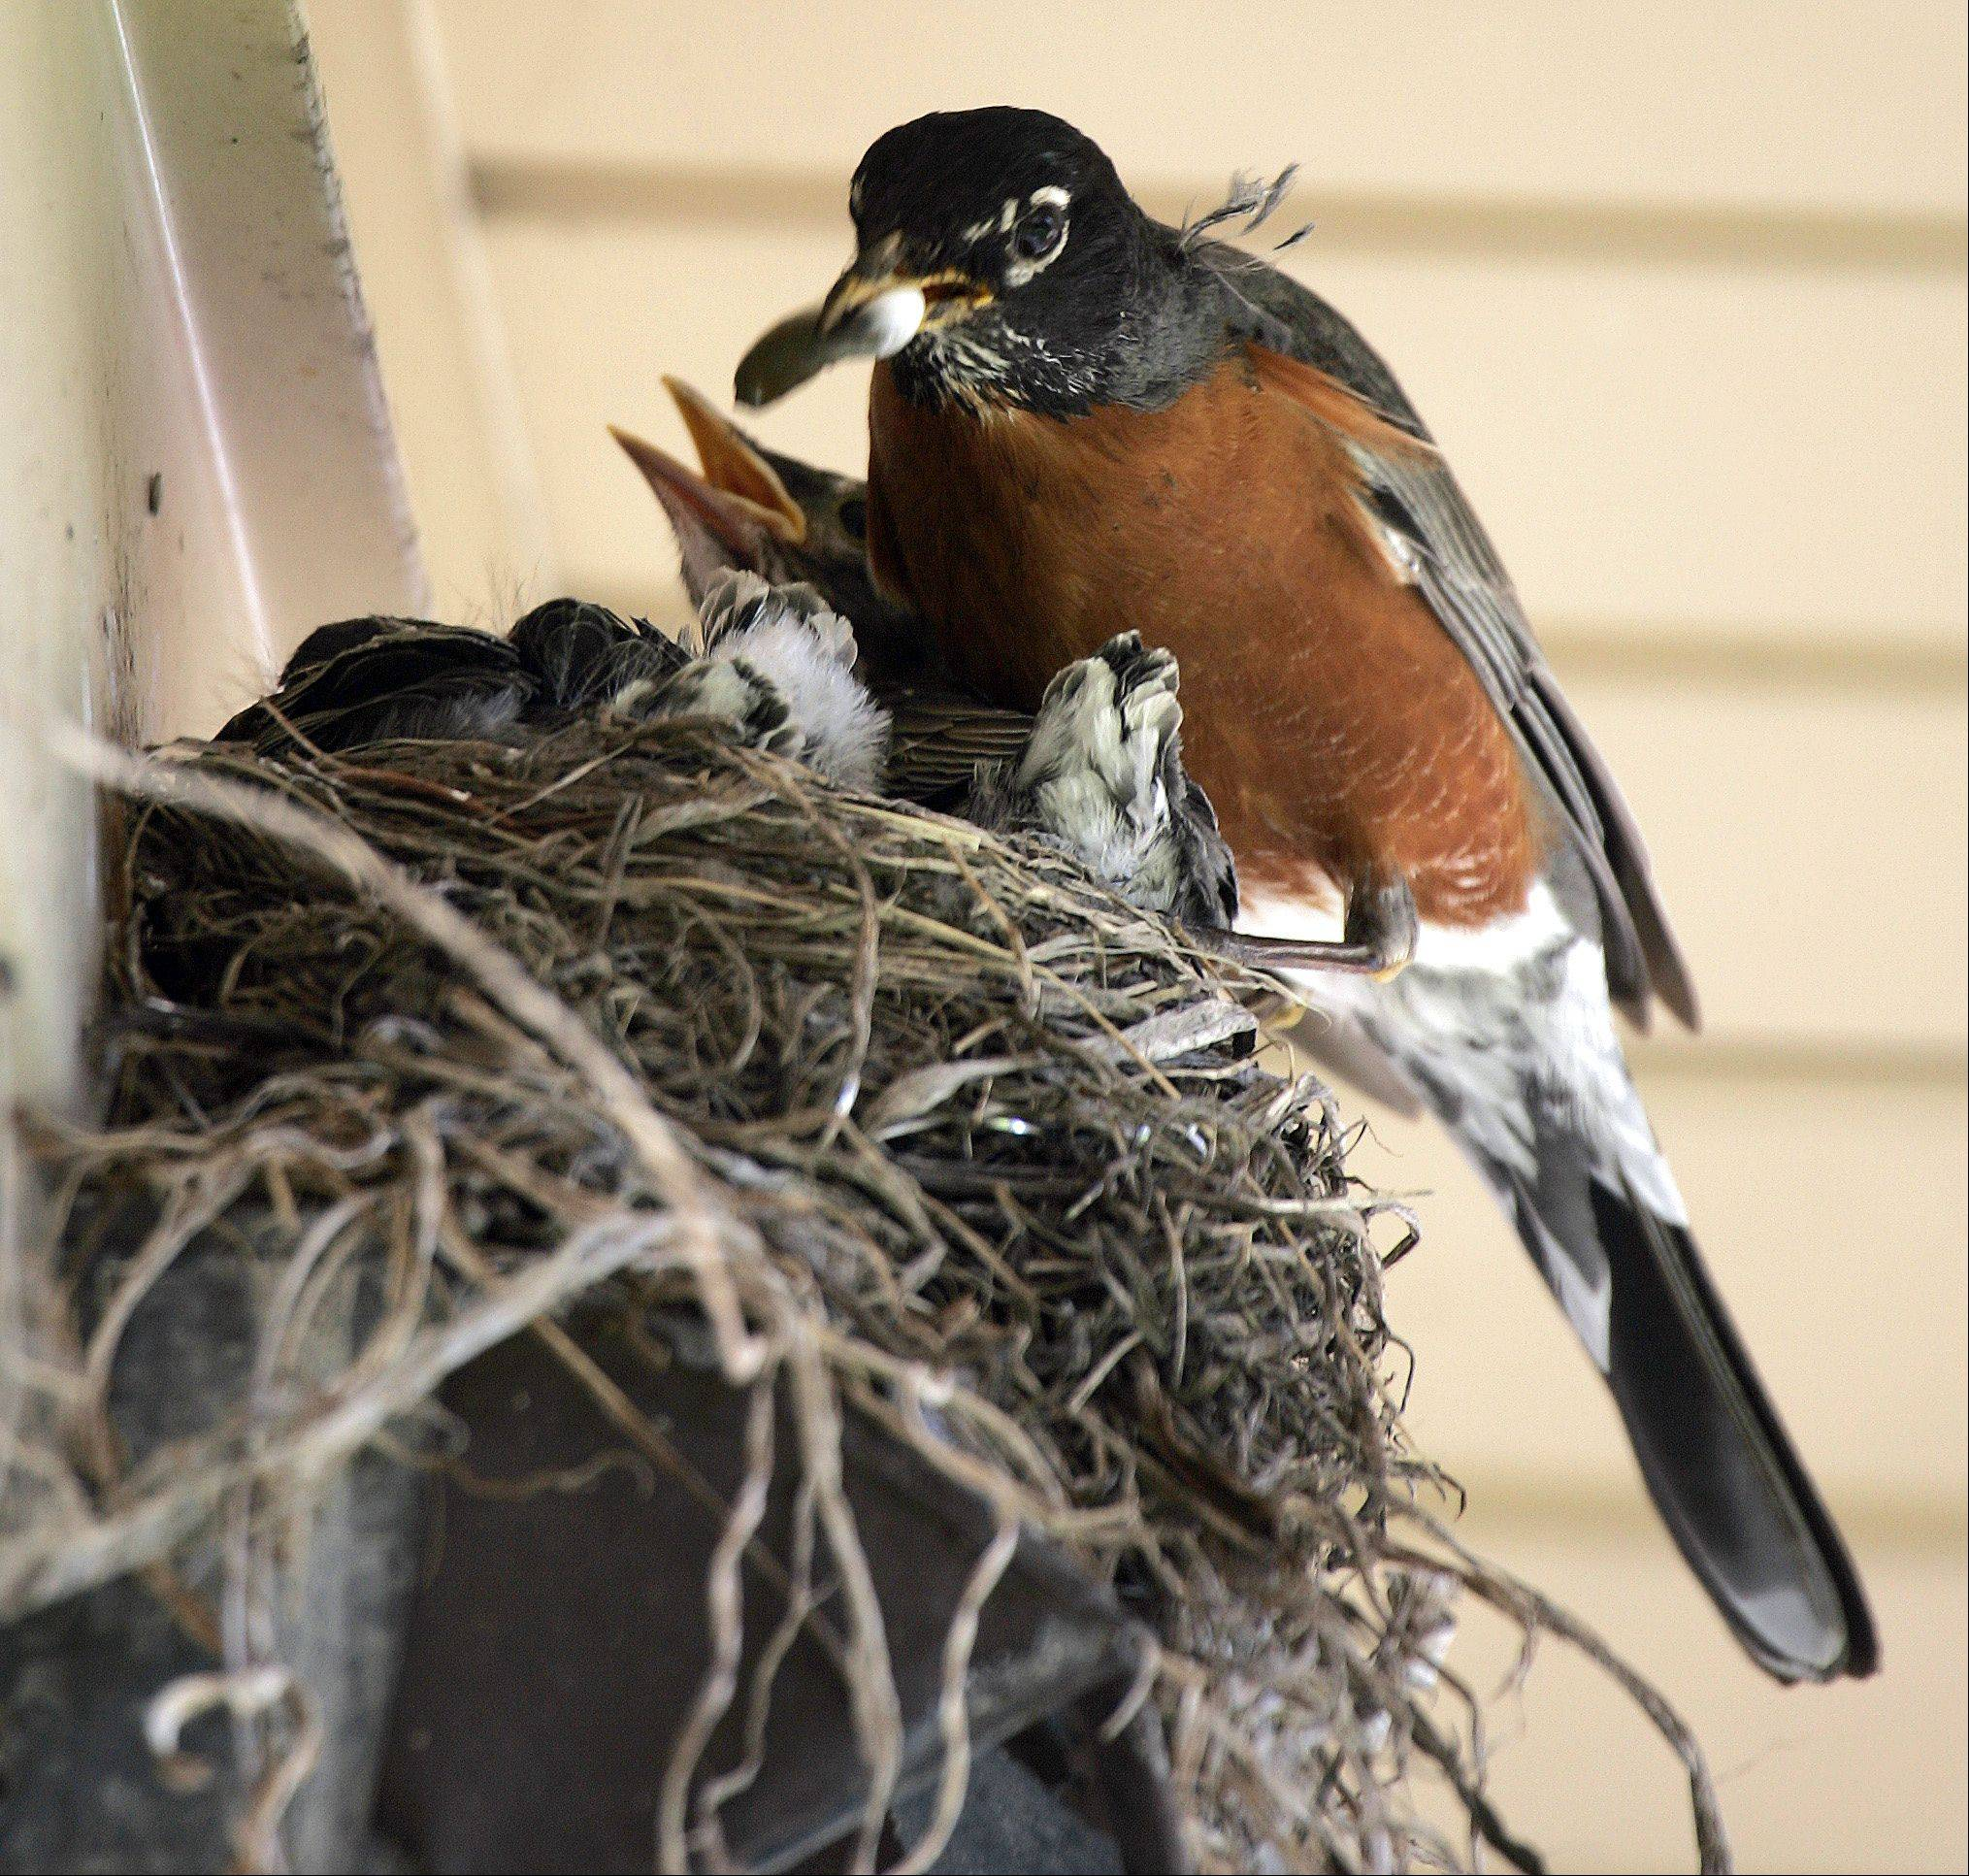 The work is never done. After multiple trips for food, a robin feeds one of their many chicks Wednesday under a roof overhang in Elgin. According to allaboutbirds.com an American Robin can produce three broods a year.